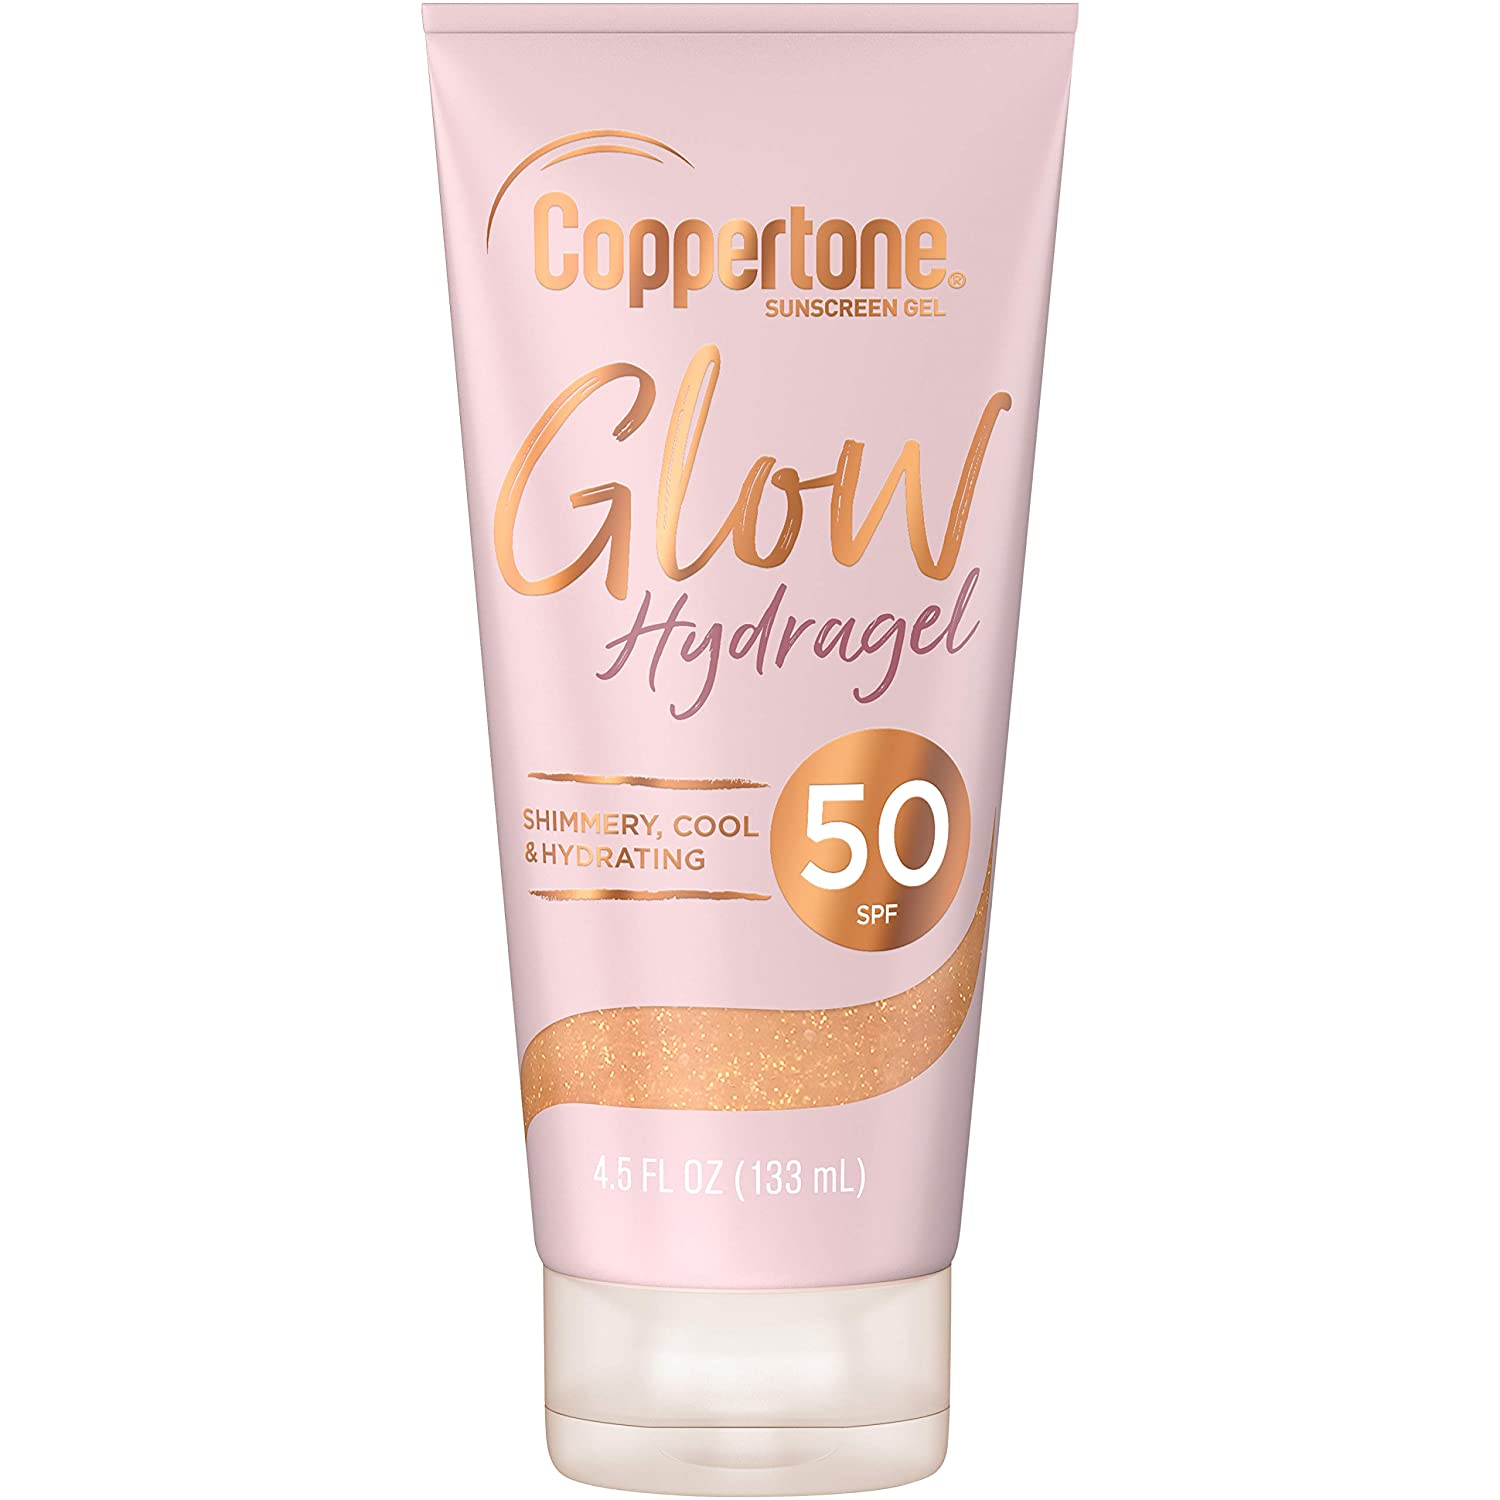 Coppertone Glow Hydragel SPF 50 Sunscreen Lotion with Shimmer, Broad Spectrum UVA/UVB Protection, Water-Resistant, Non-Greasy, Free of Parabens, PABA, Phthalates, Oxybenzone, 4.5 Fl Ounces